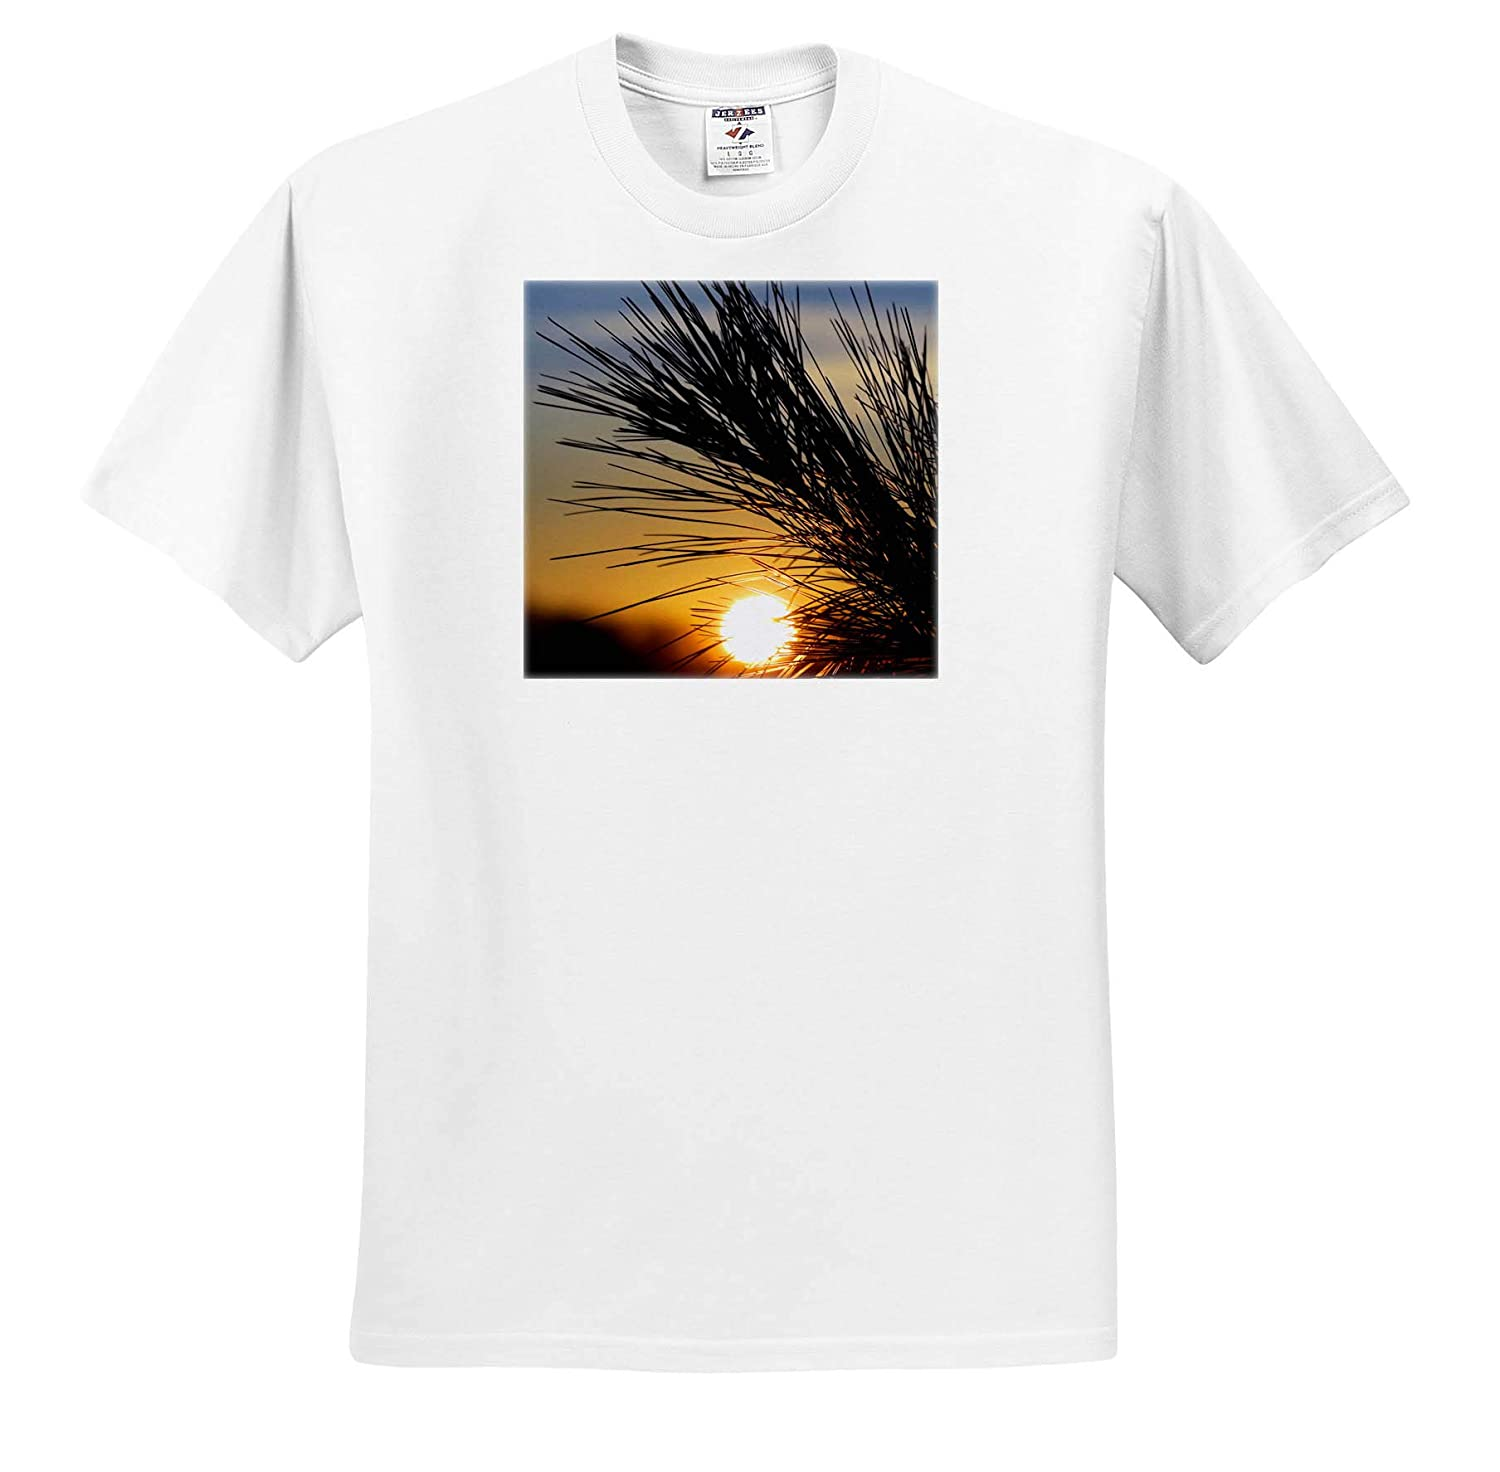 Nature - T-Shirts Photograph of The Sun Rising as it peeks Through The Pine Needles 3dRose Stamp City